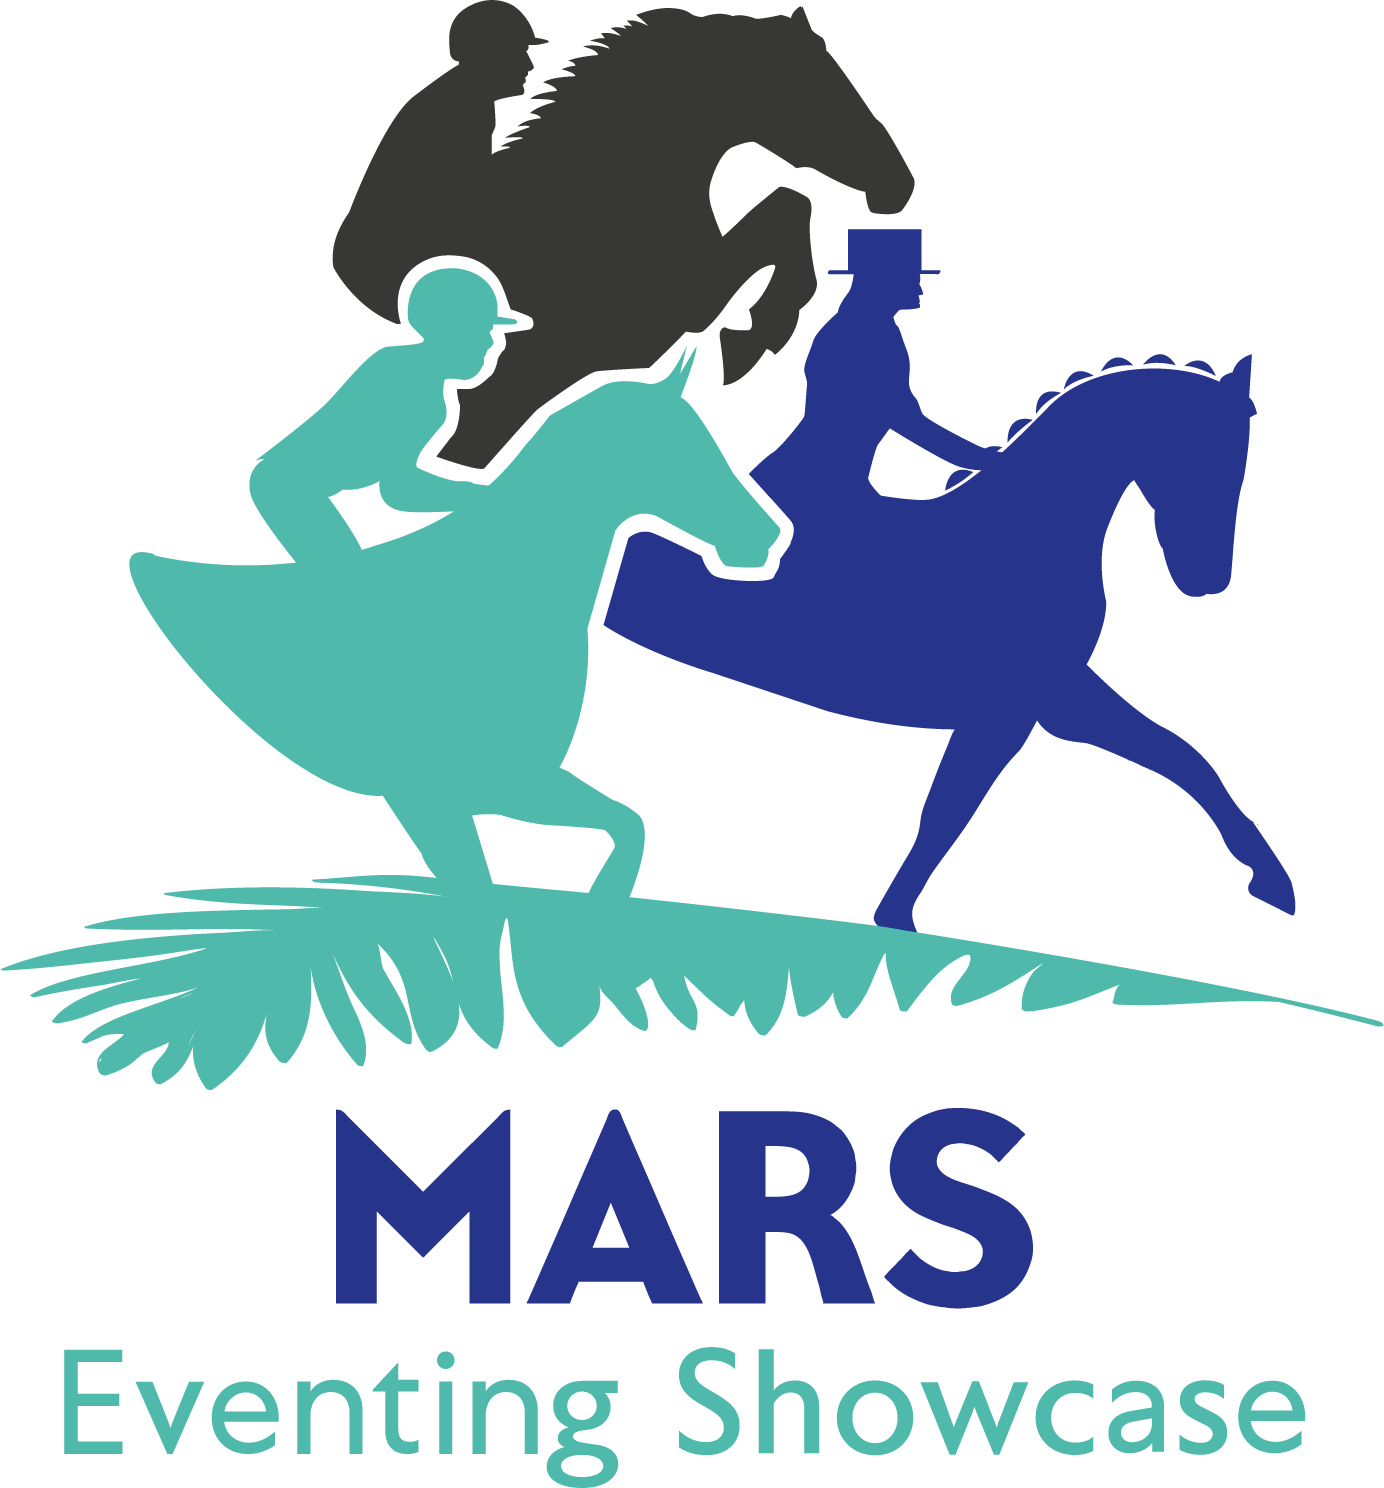 Mars Eventing Showcase Logo_CMYK